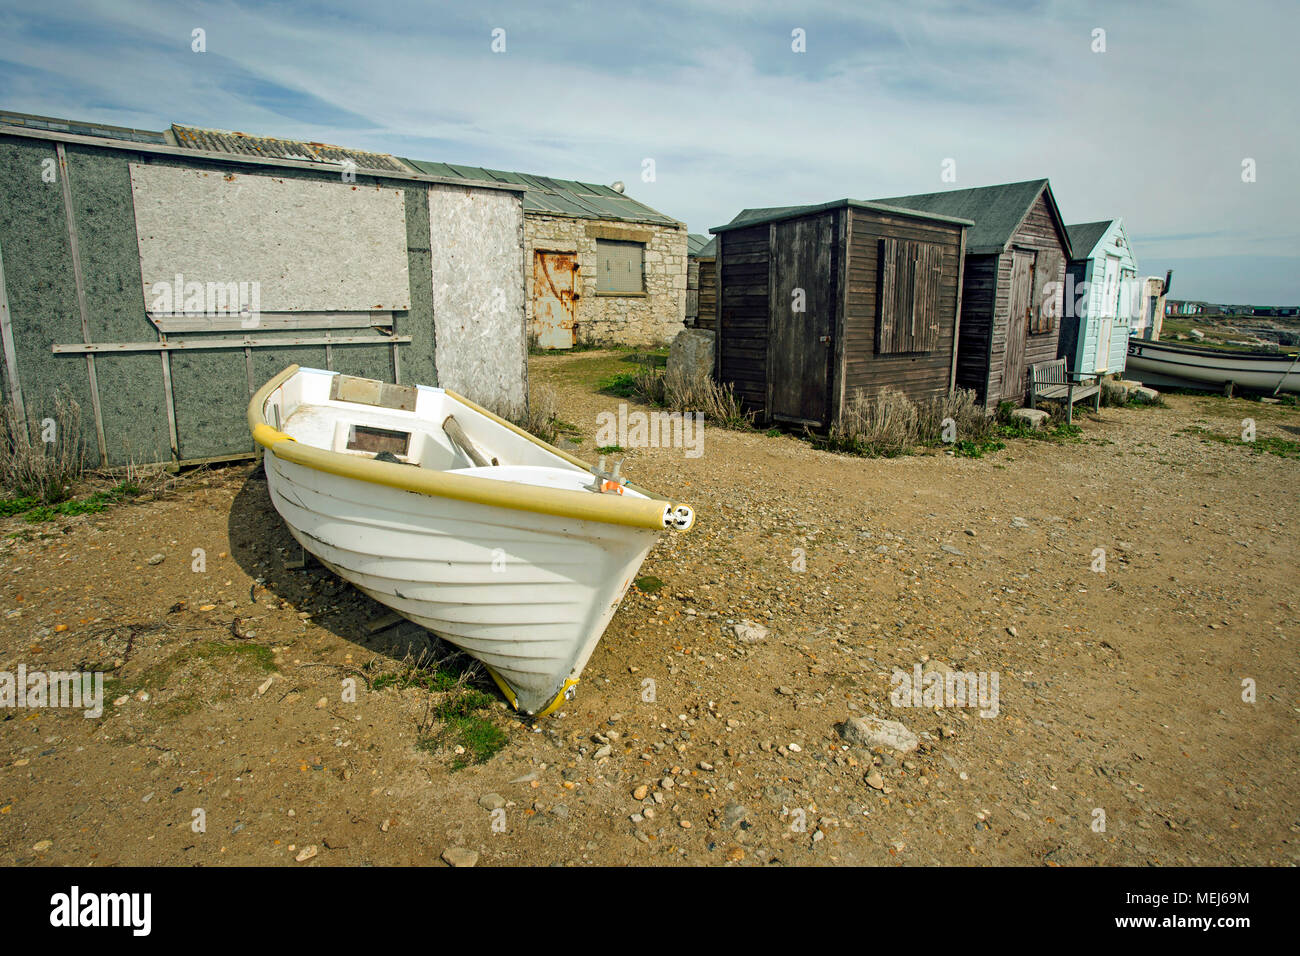 A white rowing boat on the shore by ramshackle wooden huts used by fishing personnel. - Stock Image